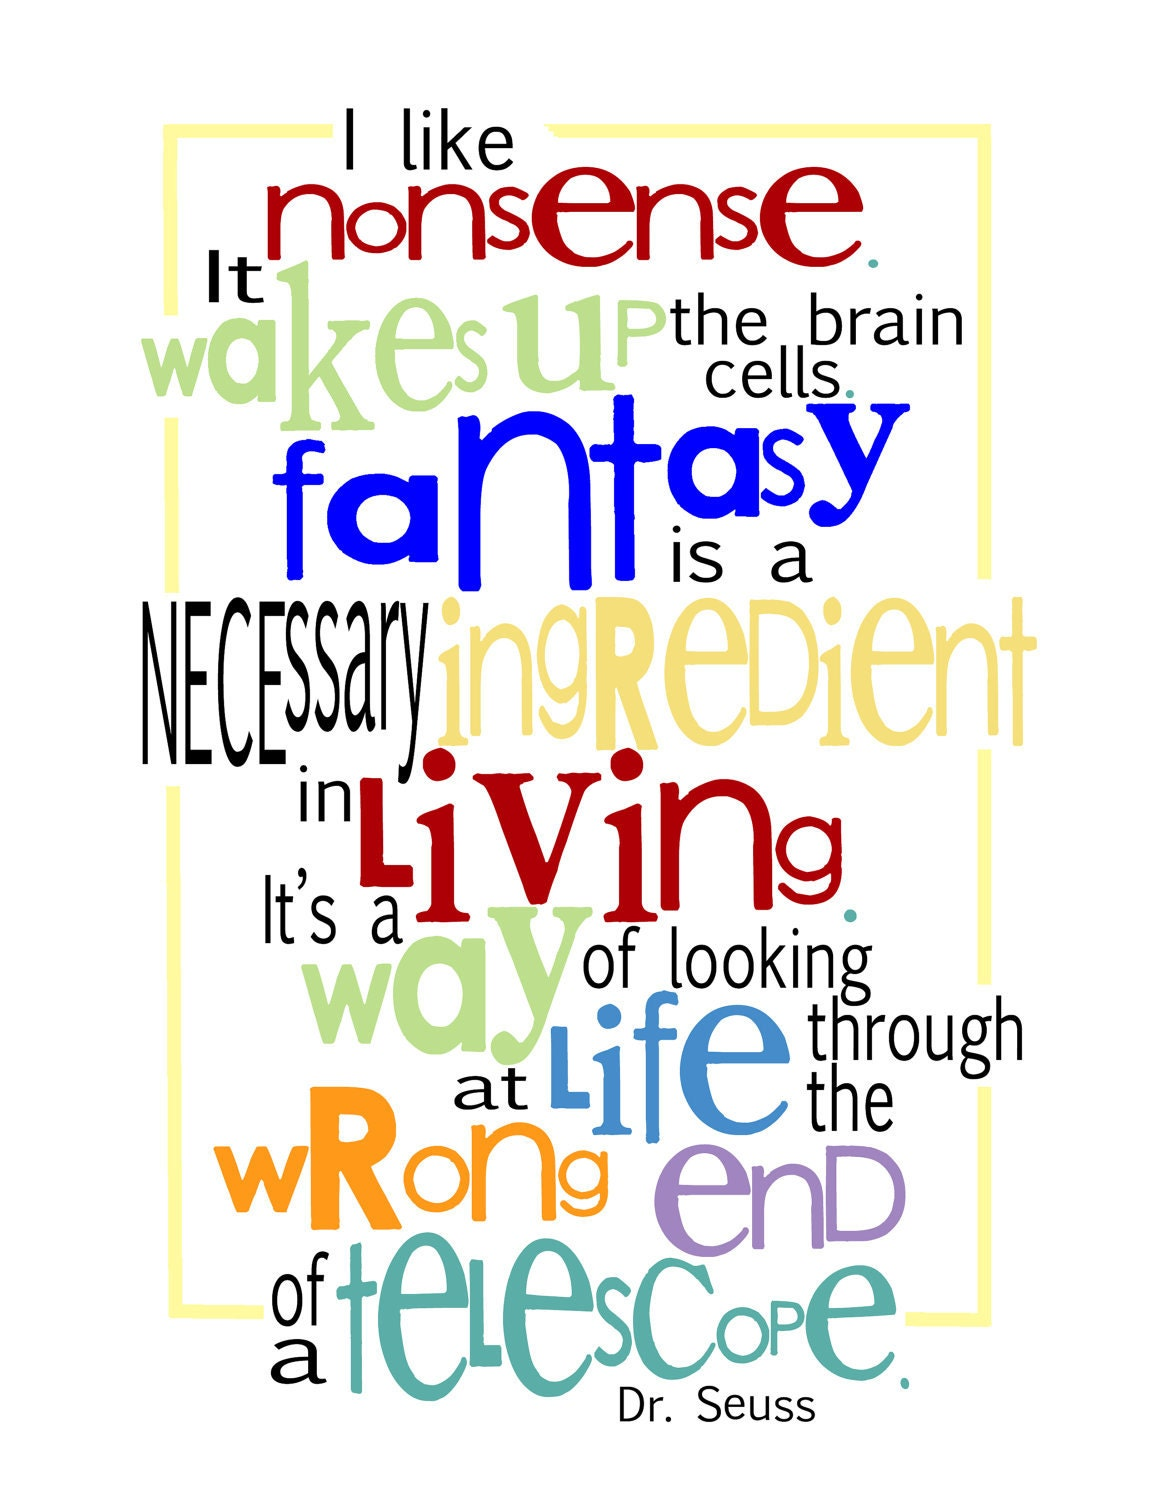 Dr  Seuss QUOTE - I like nonsense    - Print - 8x10 - Inspirational    Quotes Dr Seuss